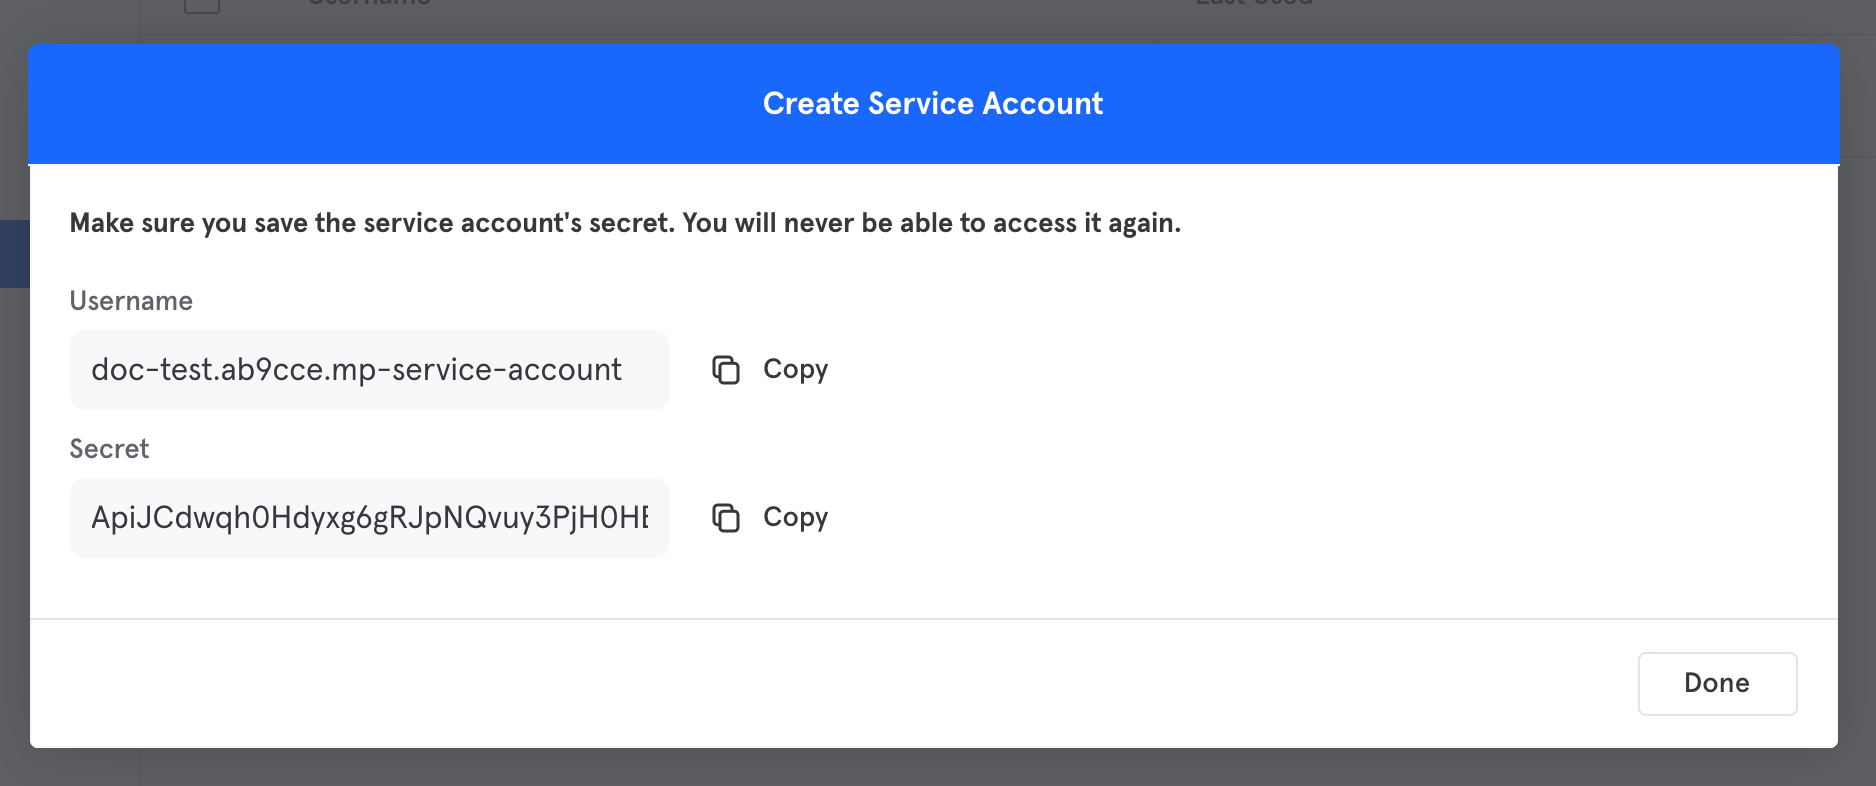 copy and paste your new service account username and secret into Geckoboard